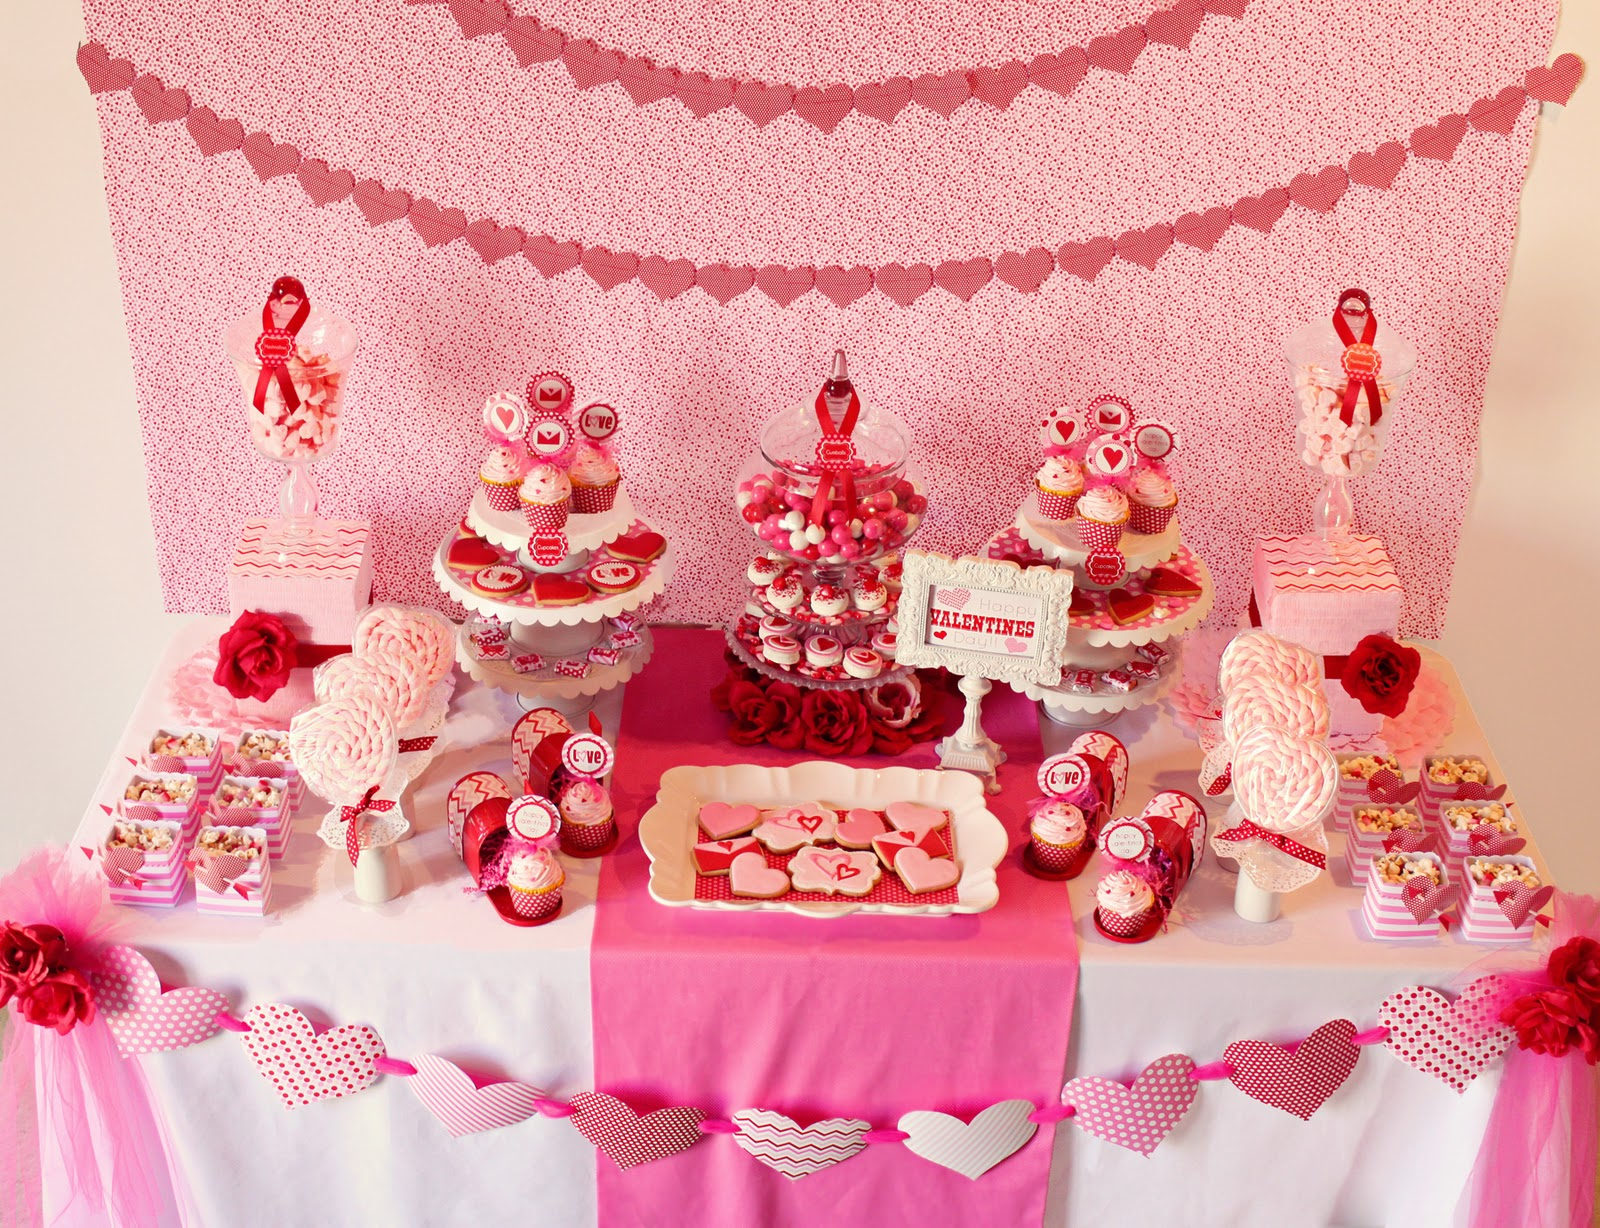 Valentineu0027s Party Ideas . Lots Of Creative, Cute Ideas For Your Next Party!